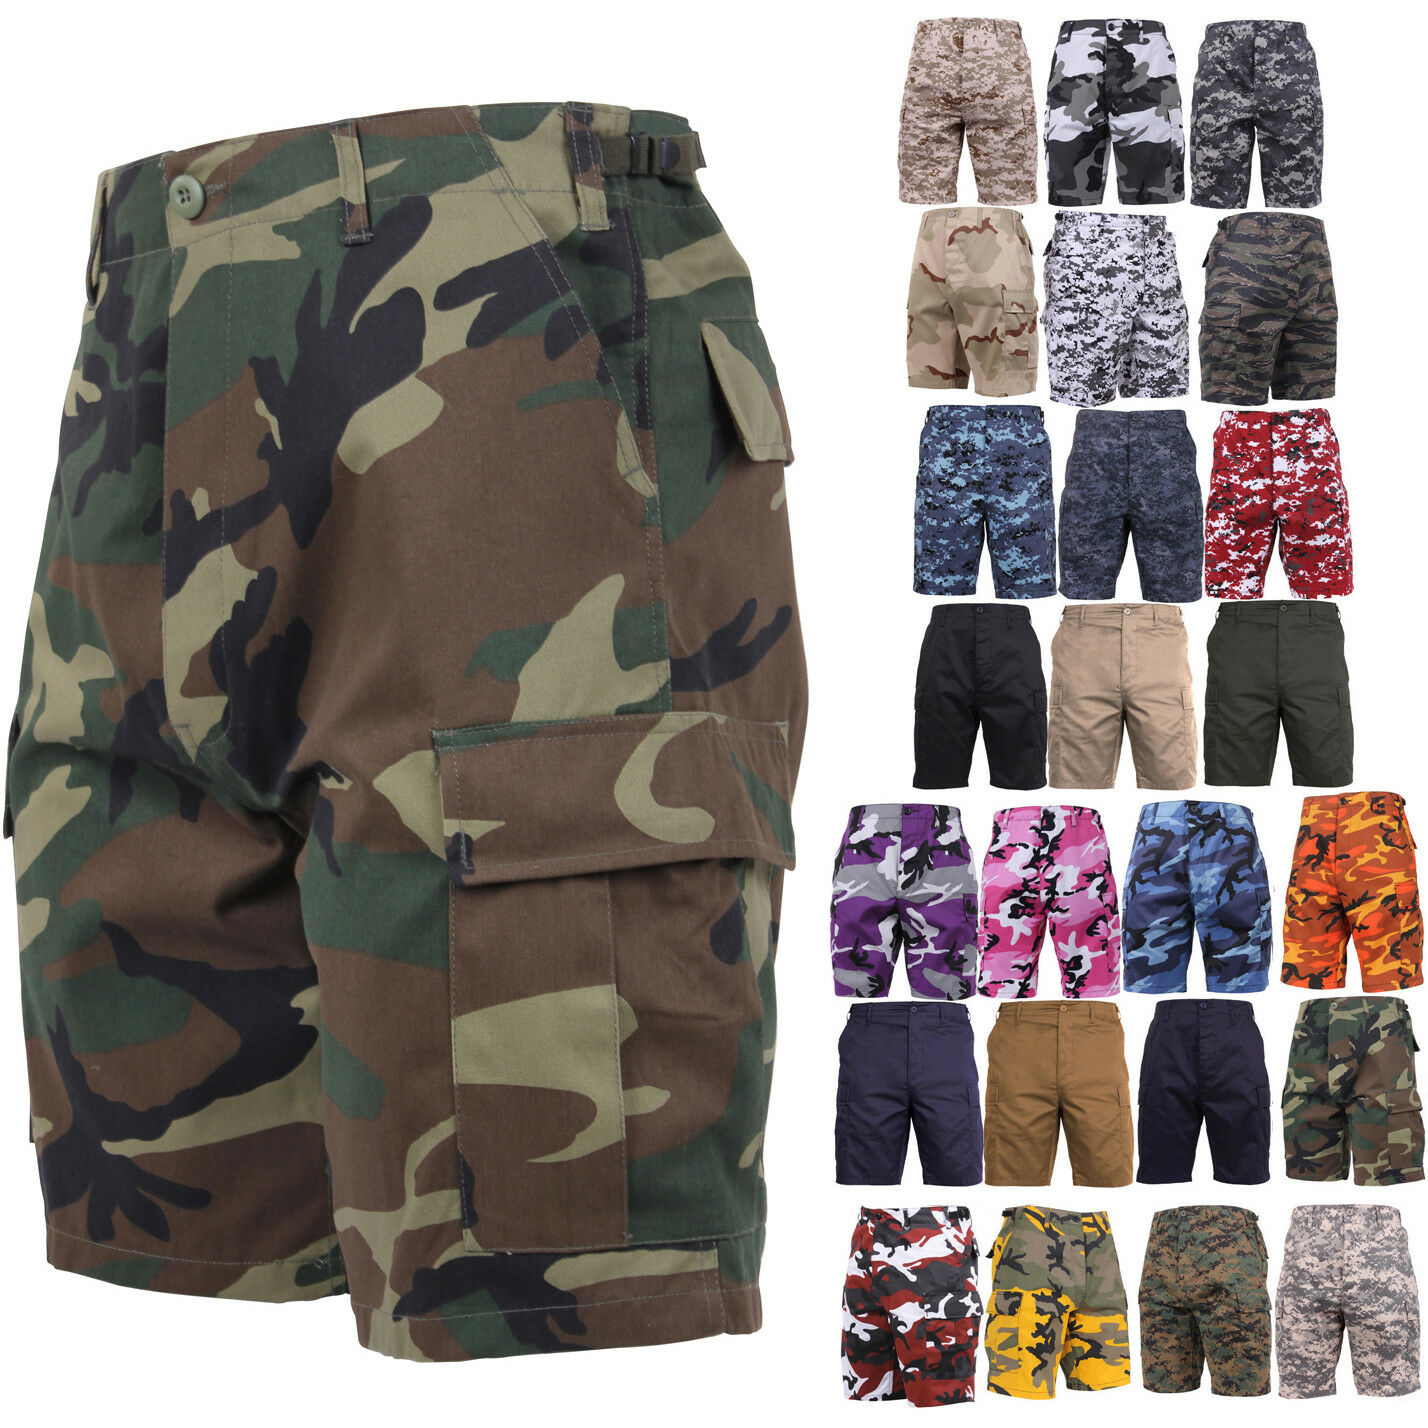 Tactical BDU Shorts Military Camo Cargo Shorts Army Fatigues Camouflage  Uniform фото e891a26a61b